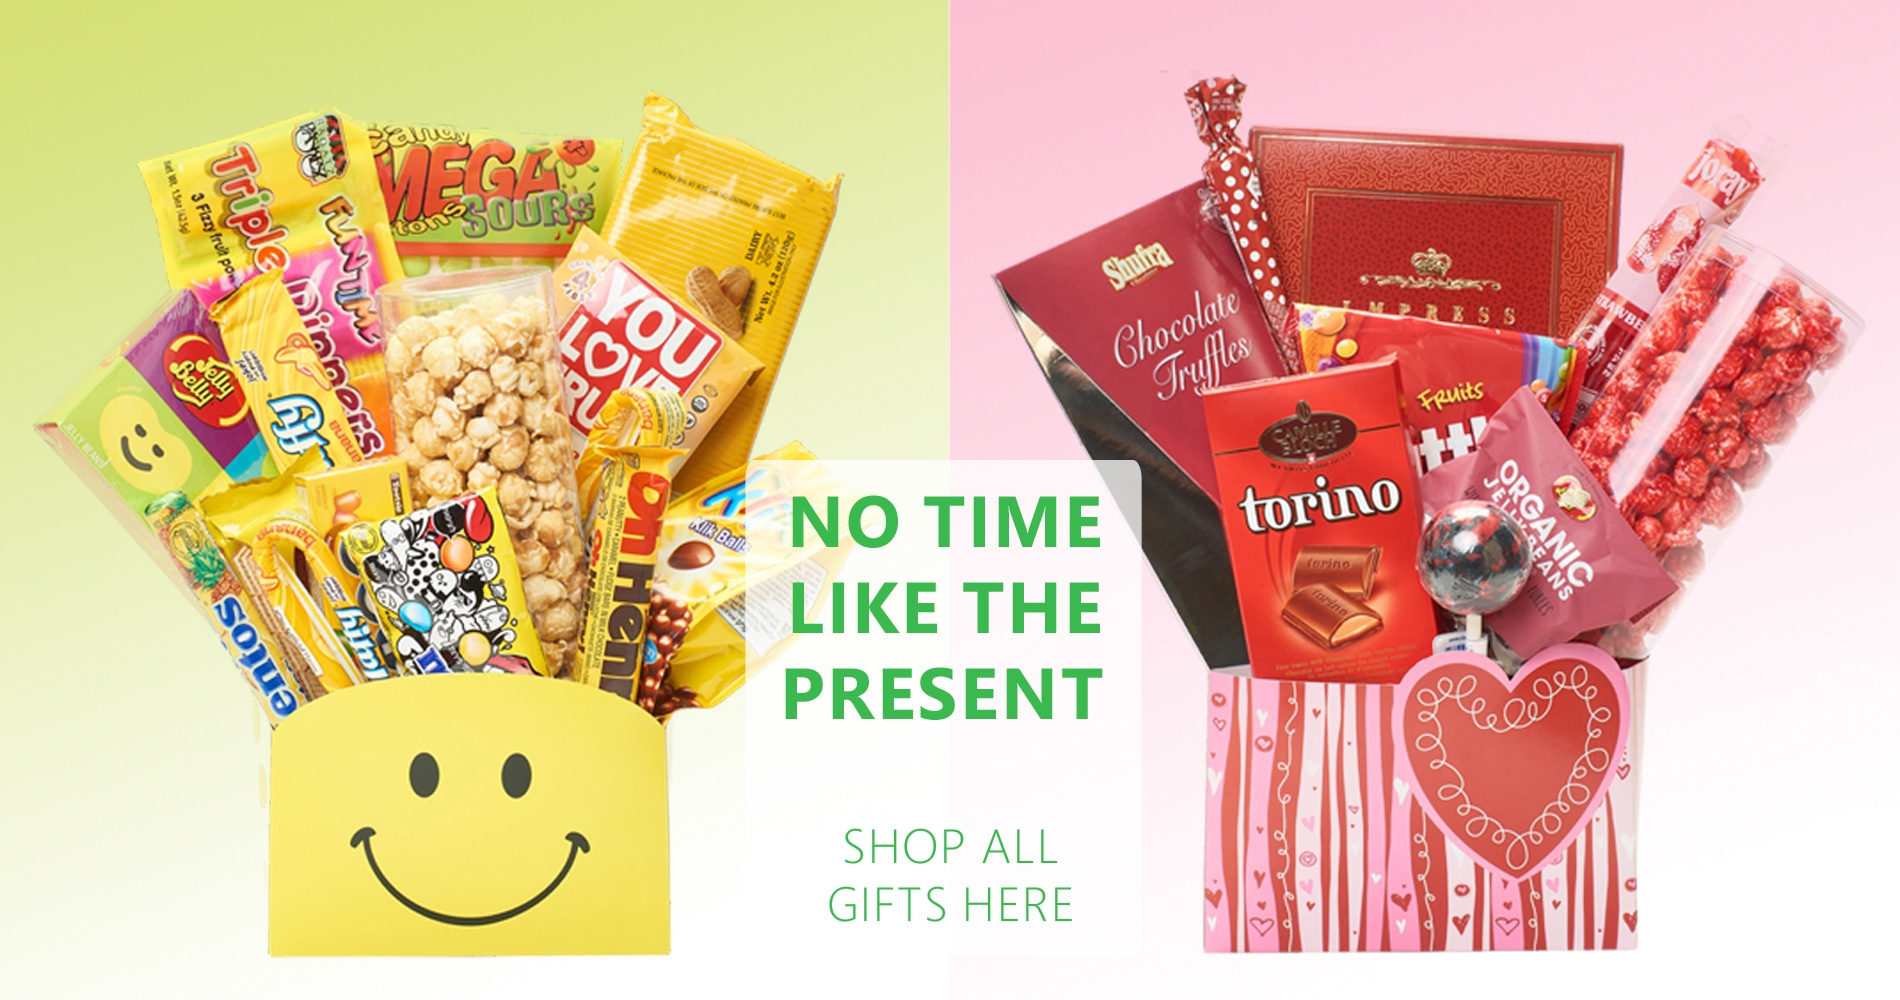 No time like the present, shop all gifts here